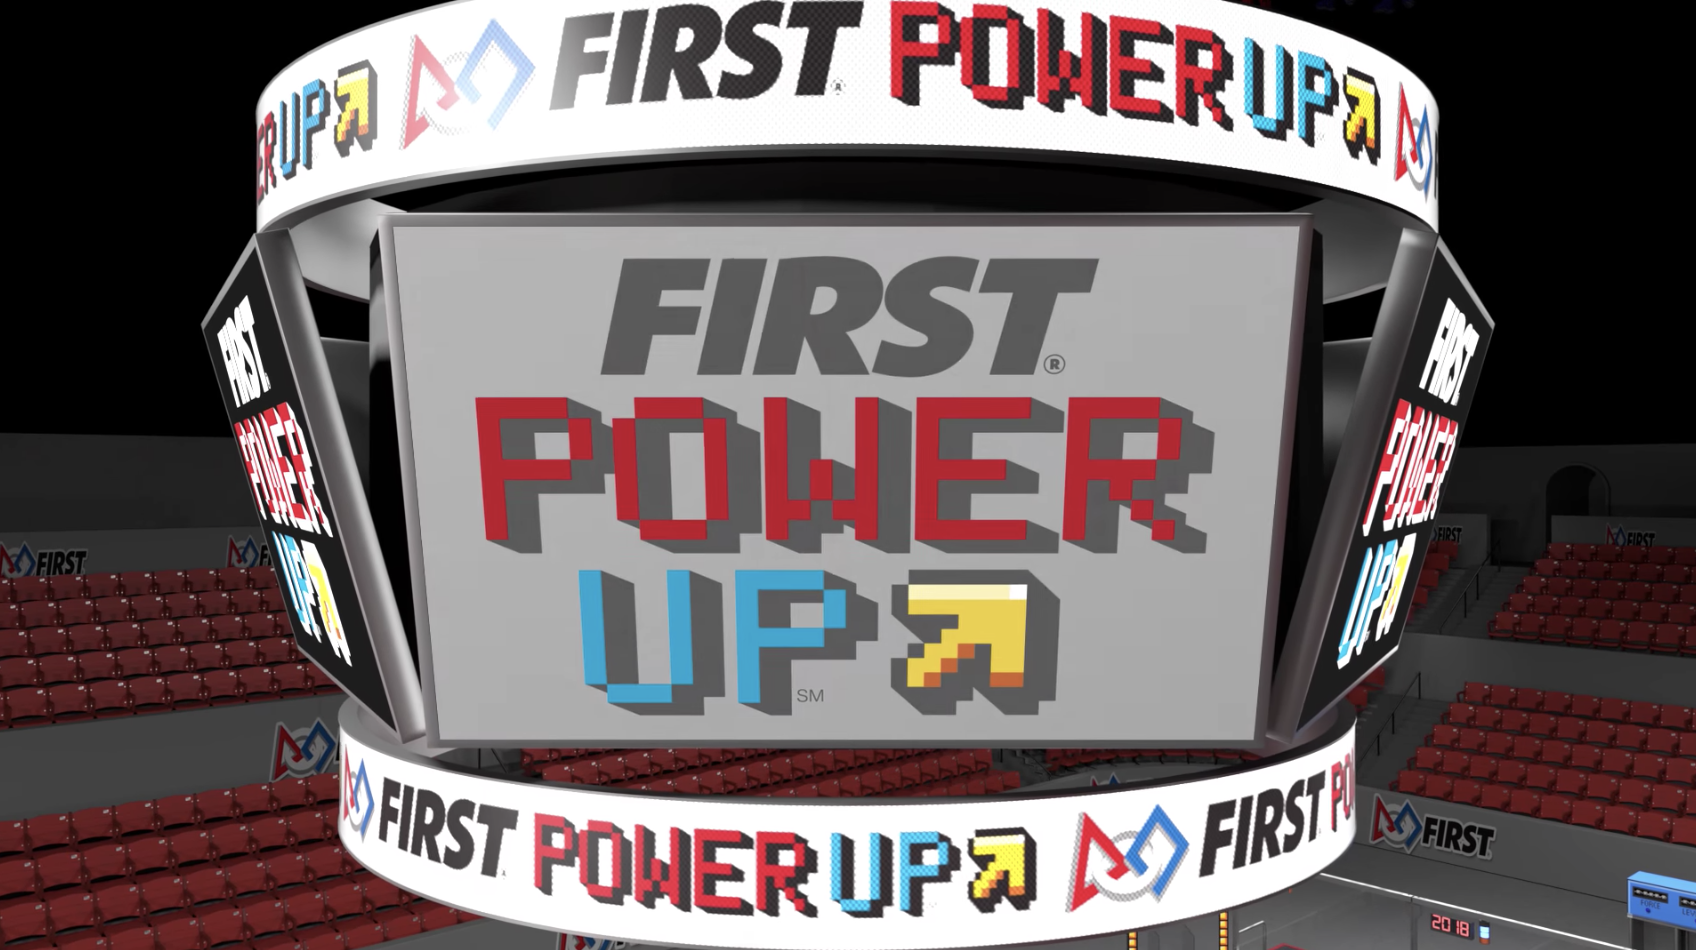 Details of FIRST® POWER UP 2018 Robotics Game Revealed